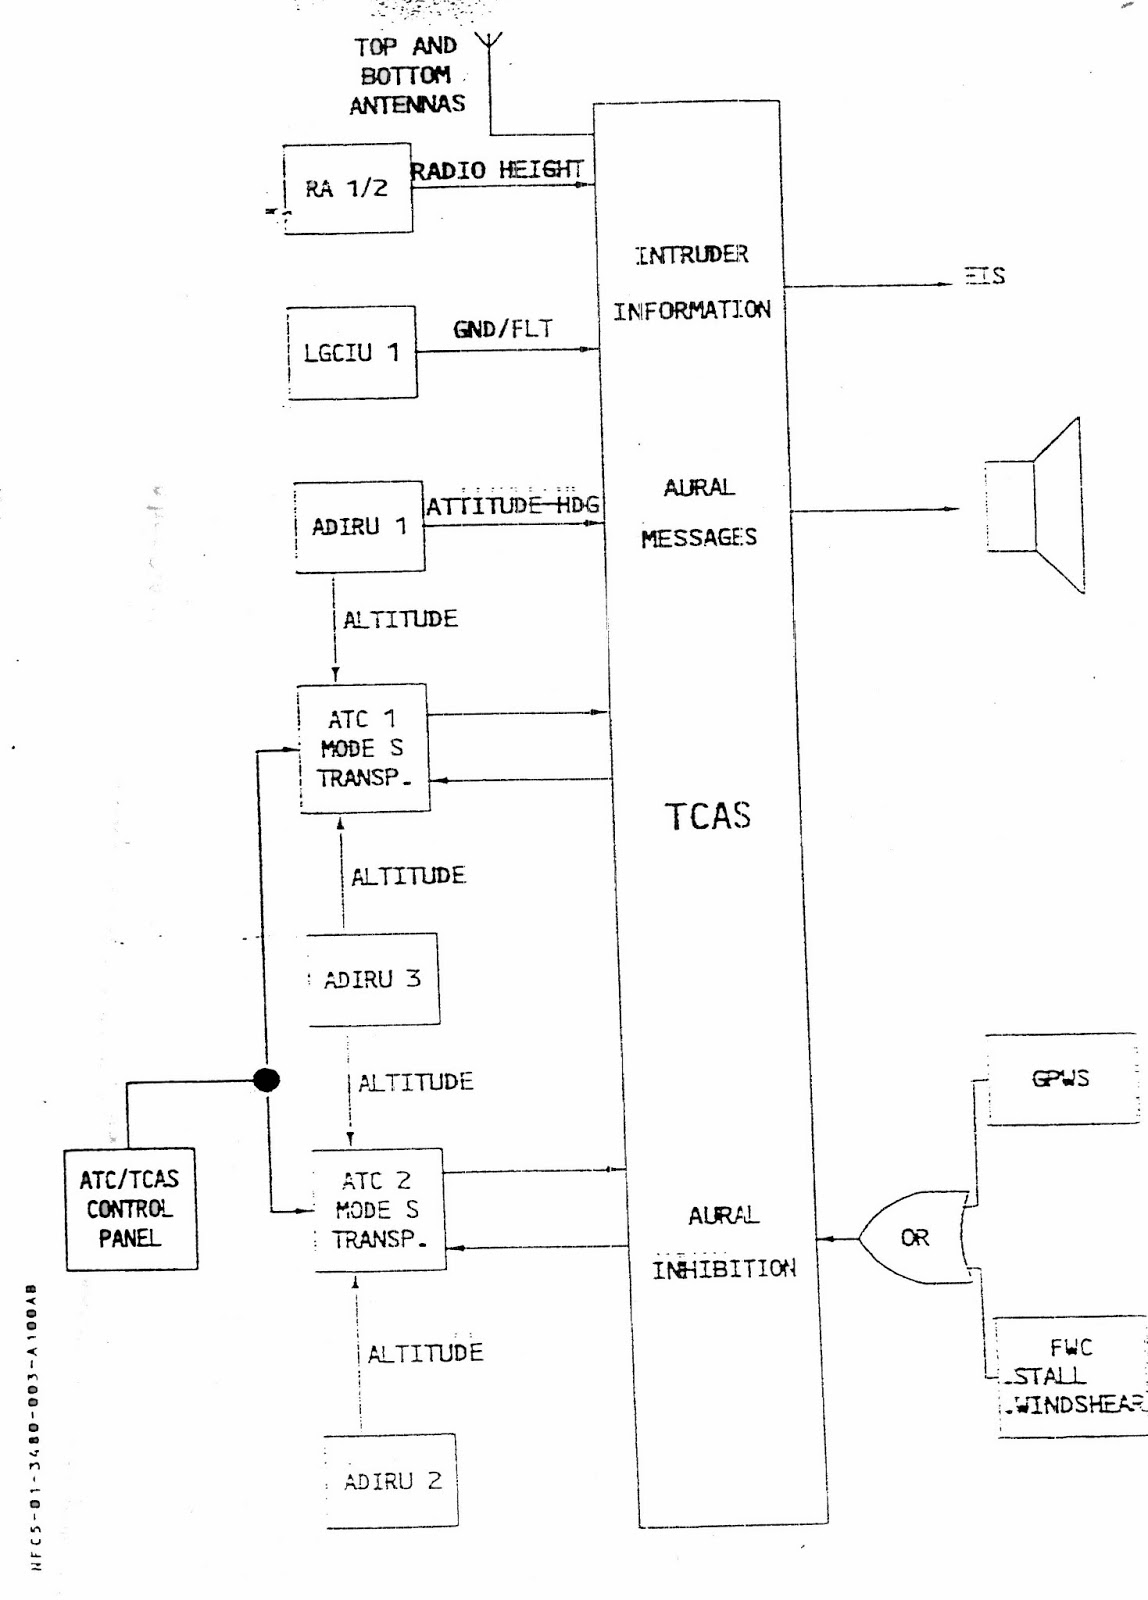 Avionics Old Tcas Atc On B737 Mode S Transponder Block Diagram An Control Panel